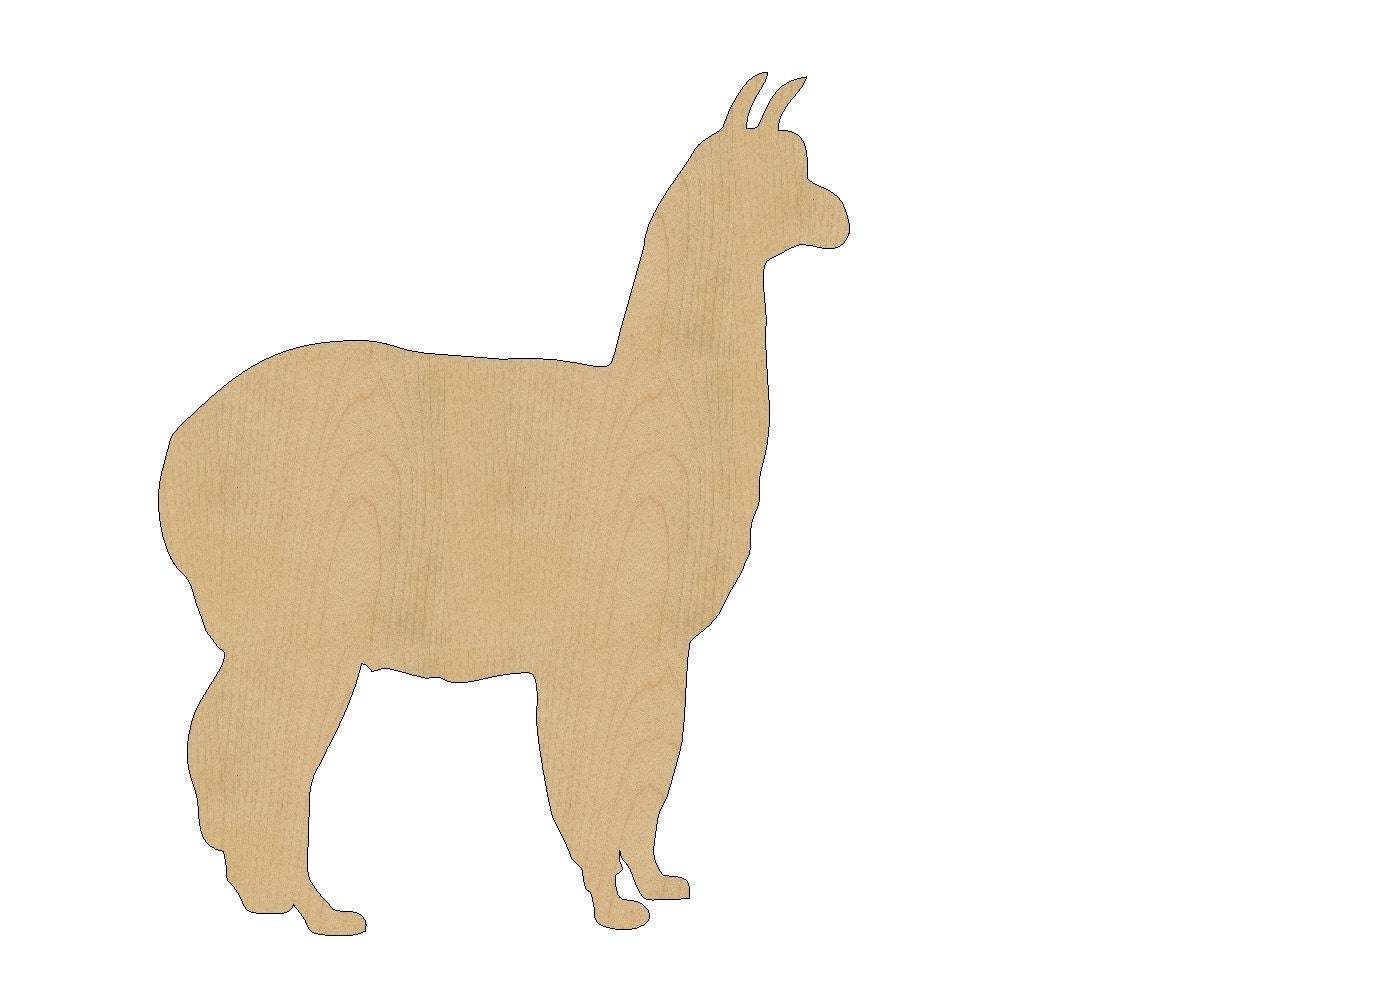 Wooden animals ornaments - Llama Cutout Shape Laser Cut Unfinished Wood Shapes Craft Shapes Gift Tags Ornaments